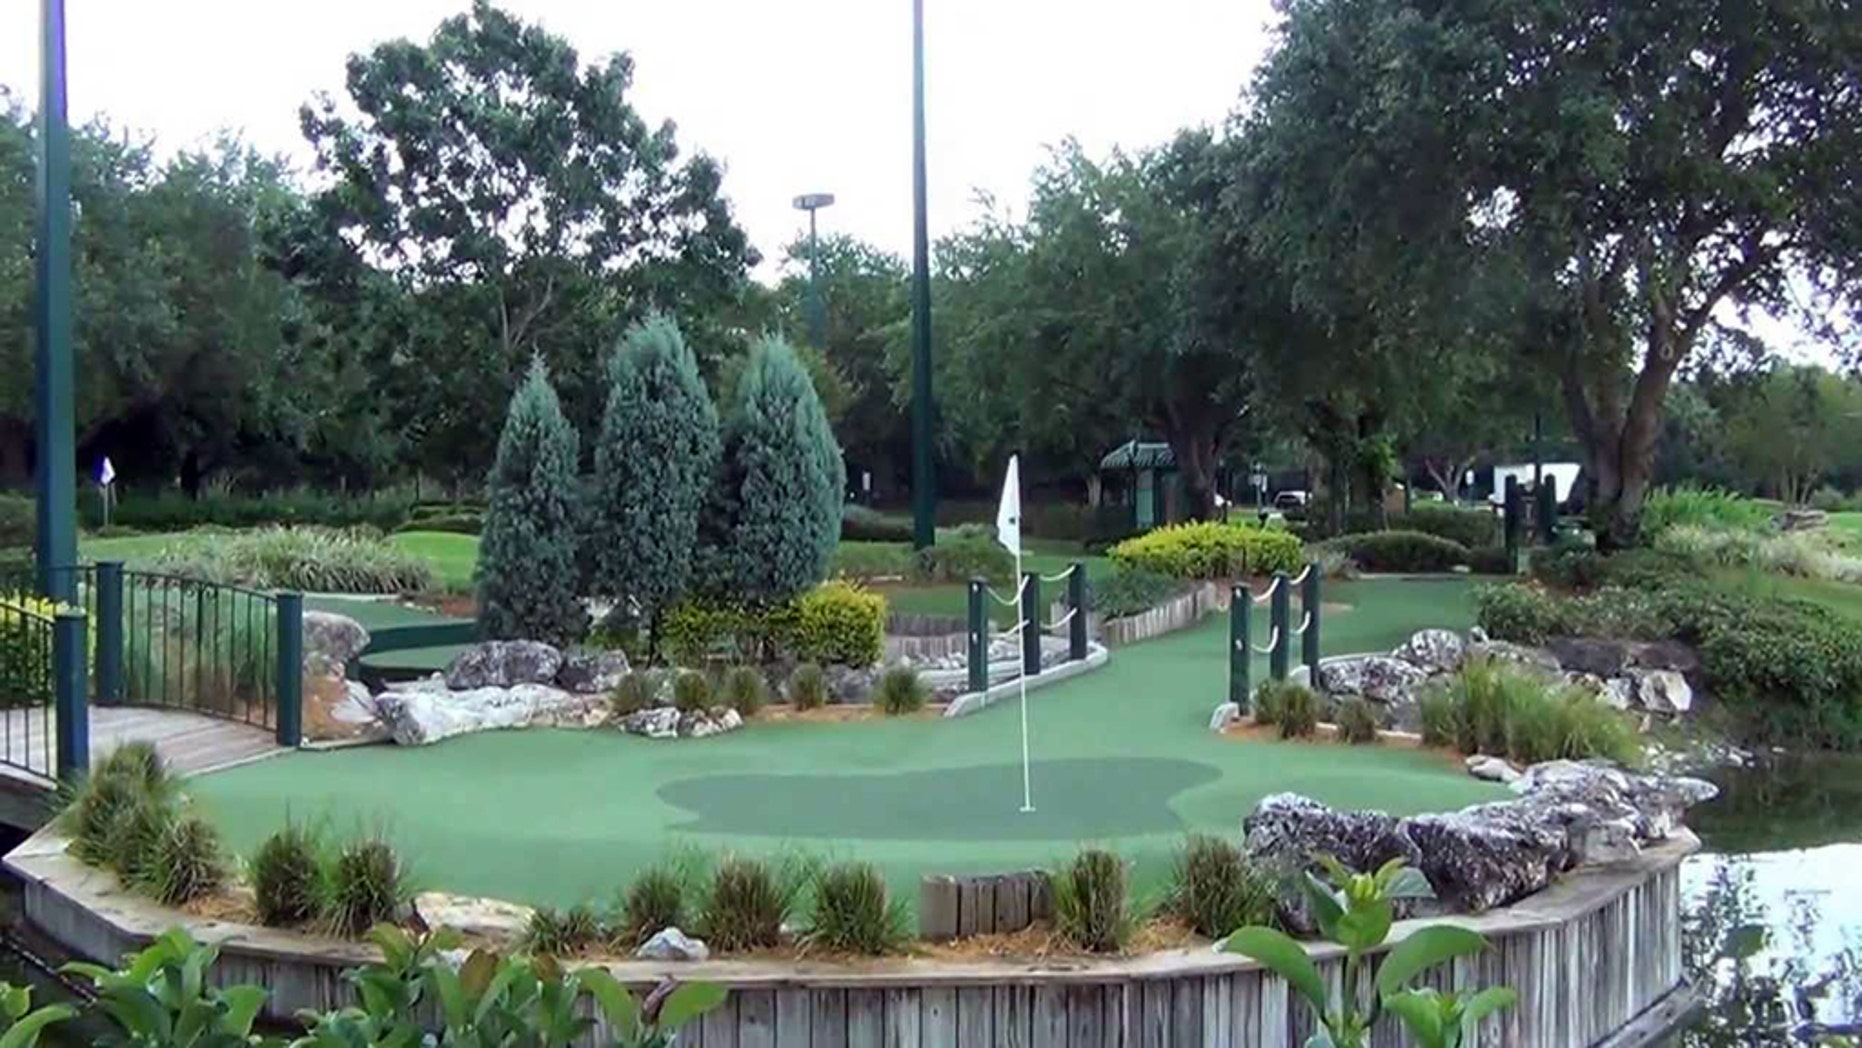 Fantasia Gardens miniature golf course at Disney World in Orlando.